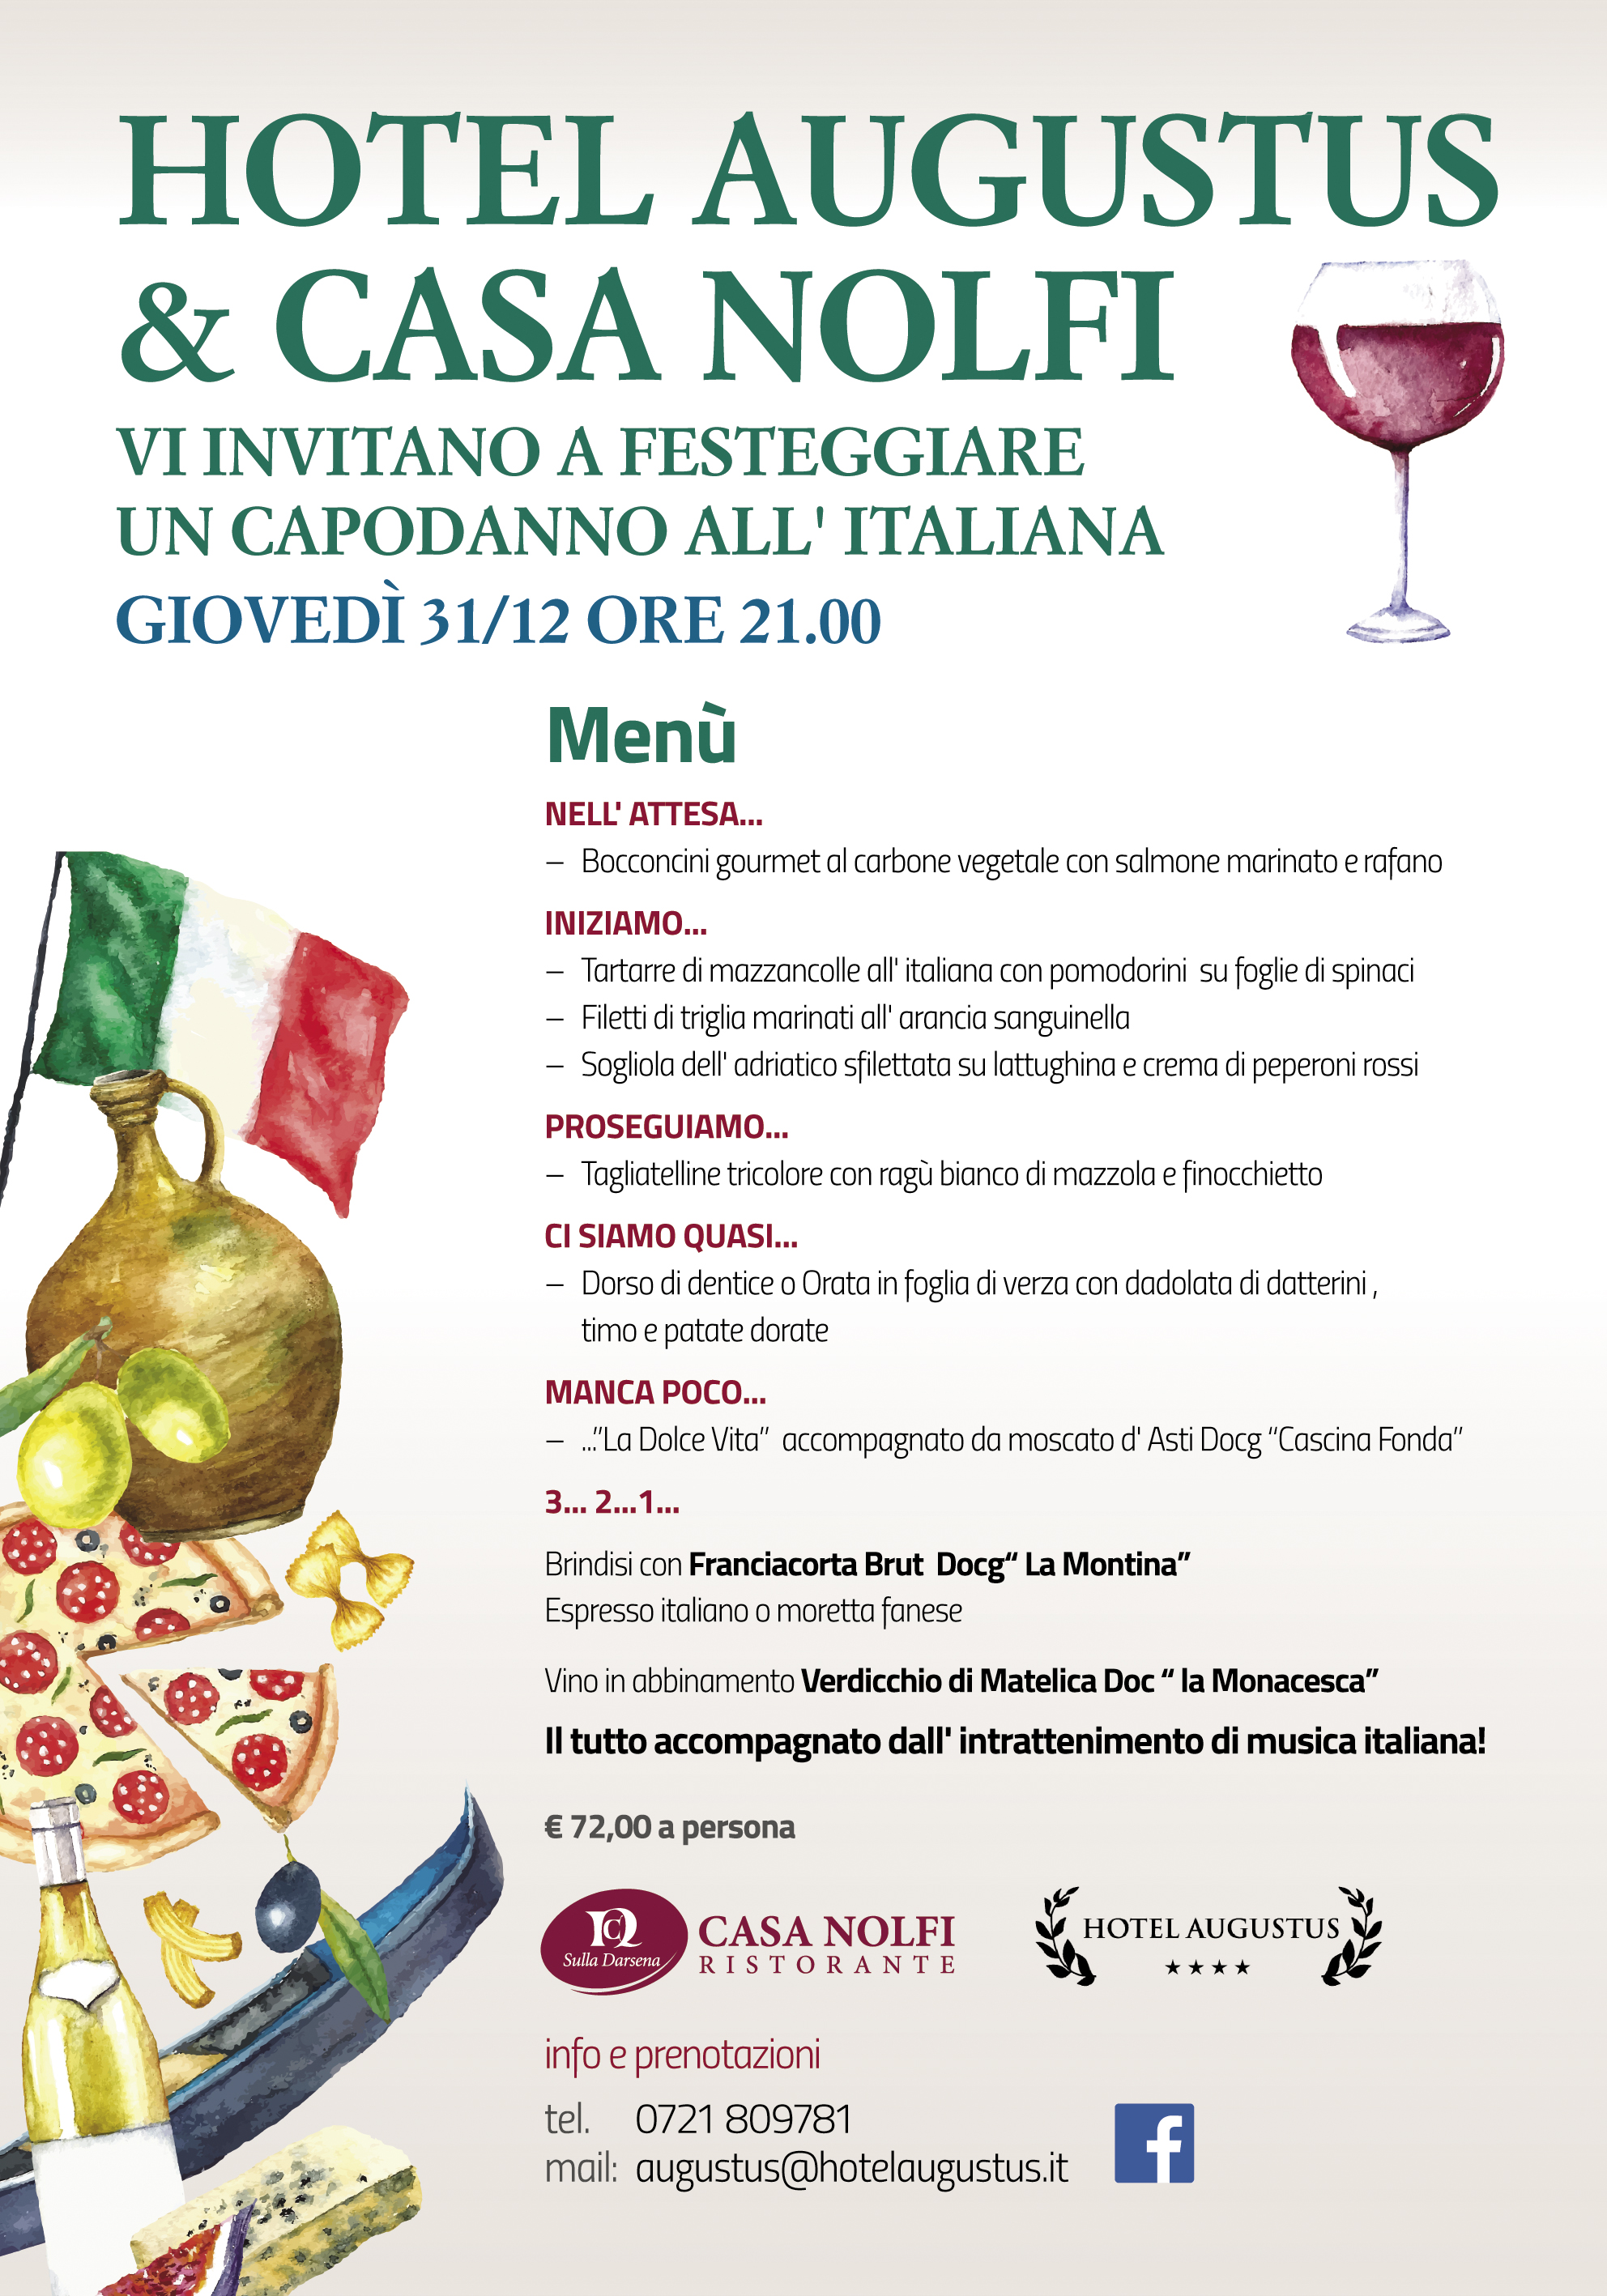 Capodanno all'italiana a Fano!